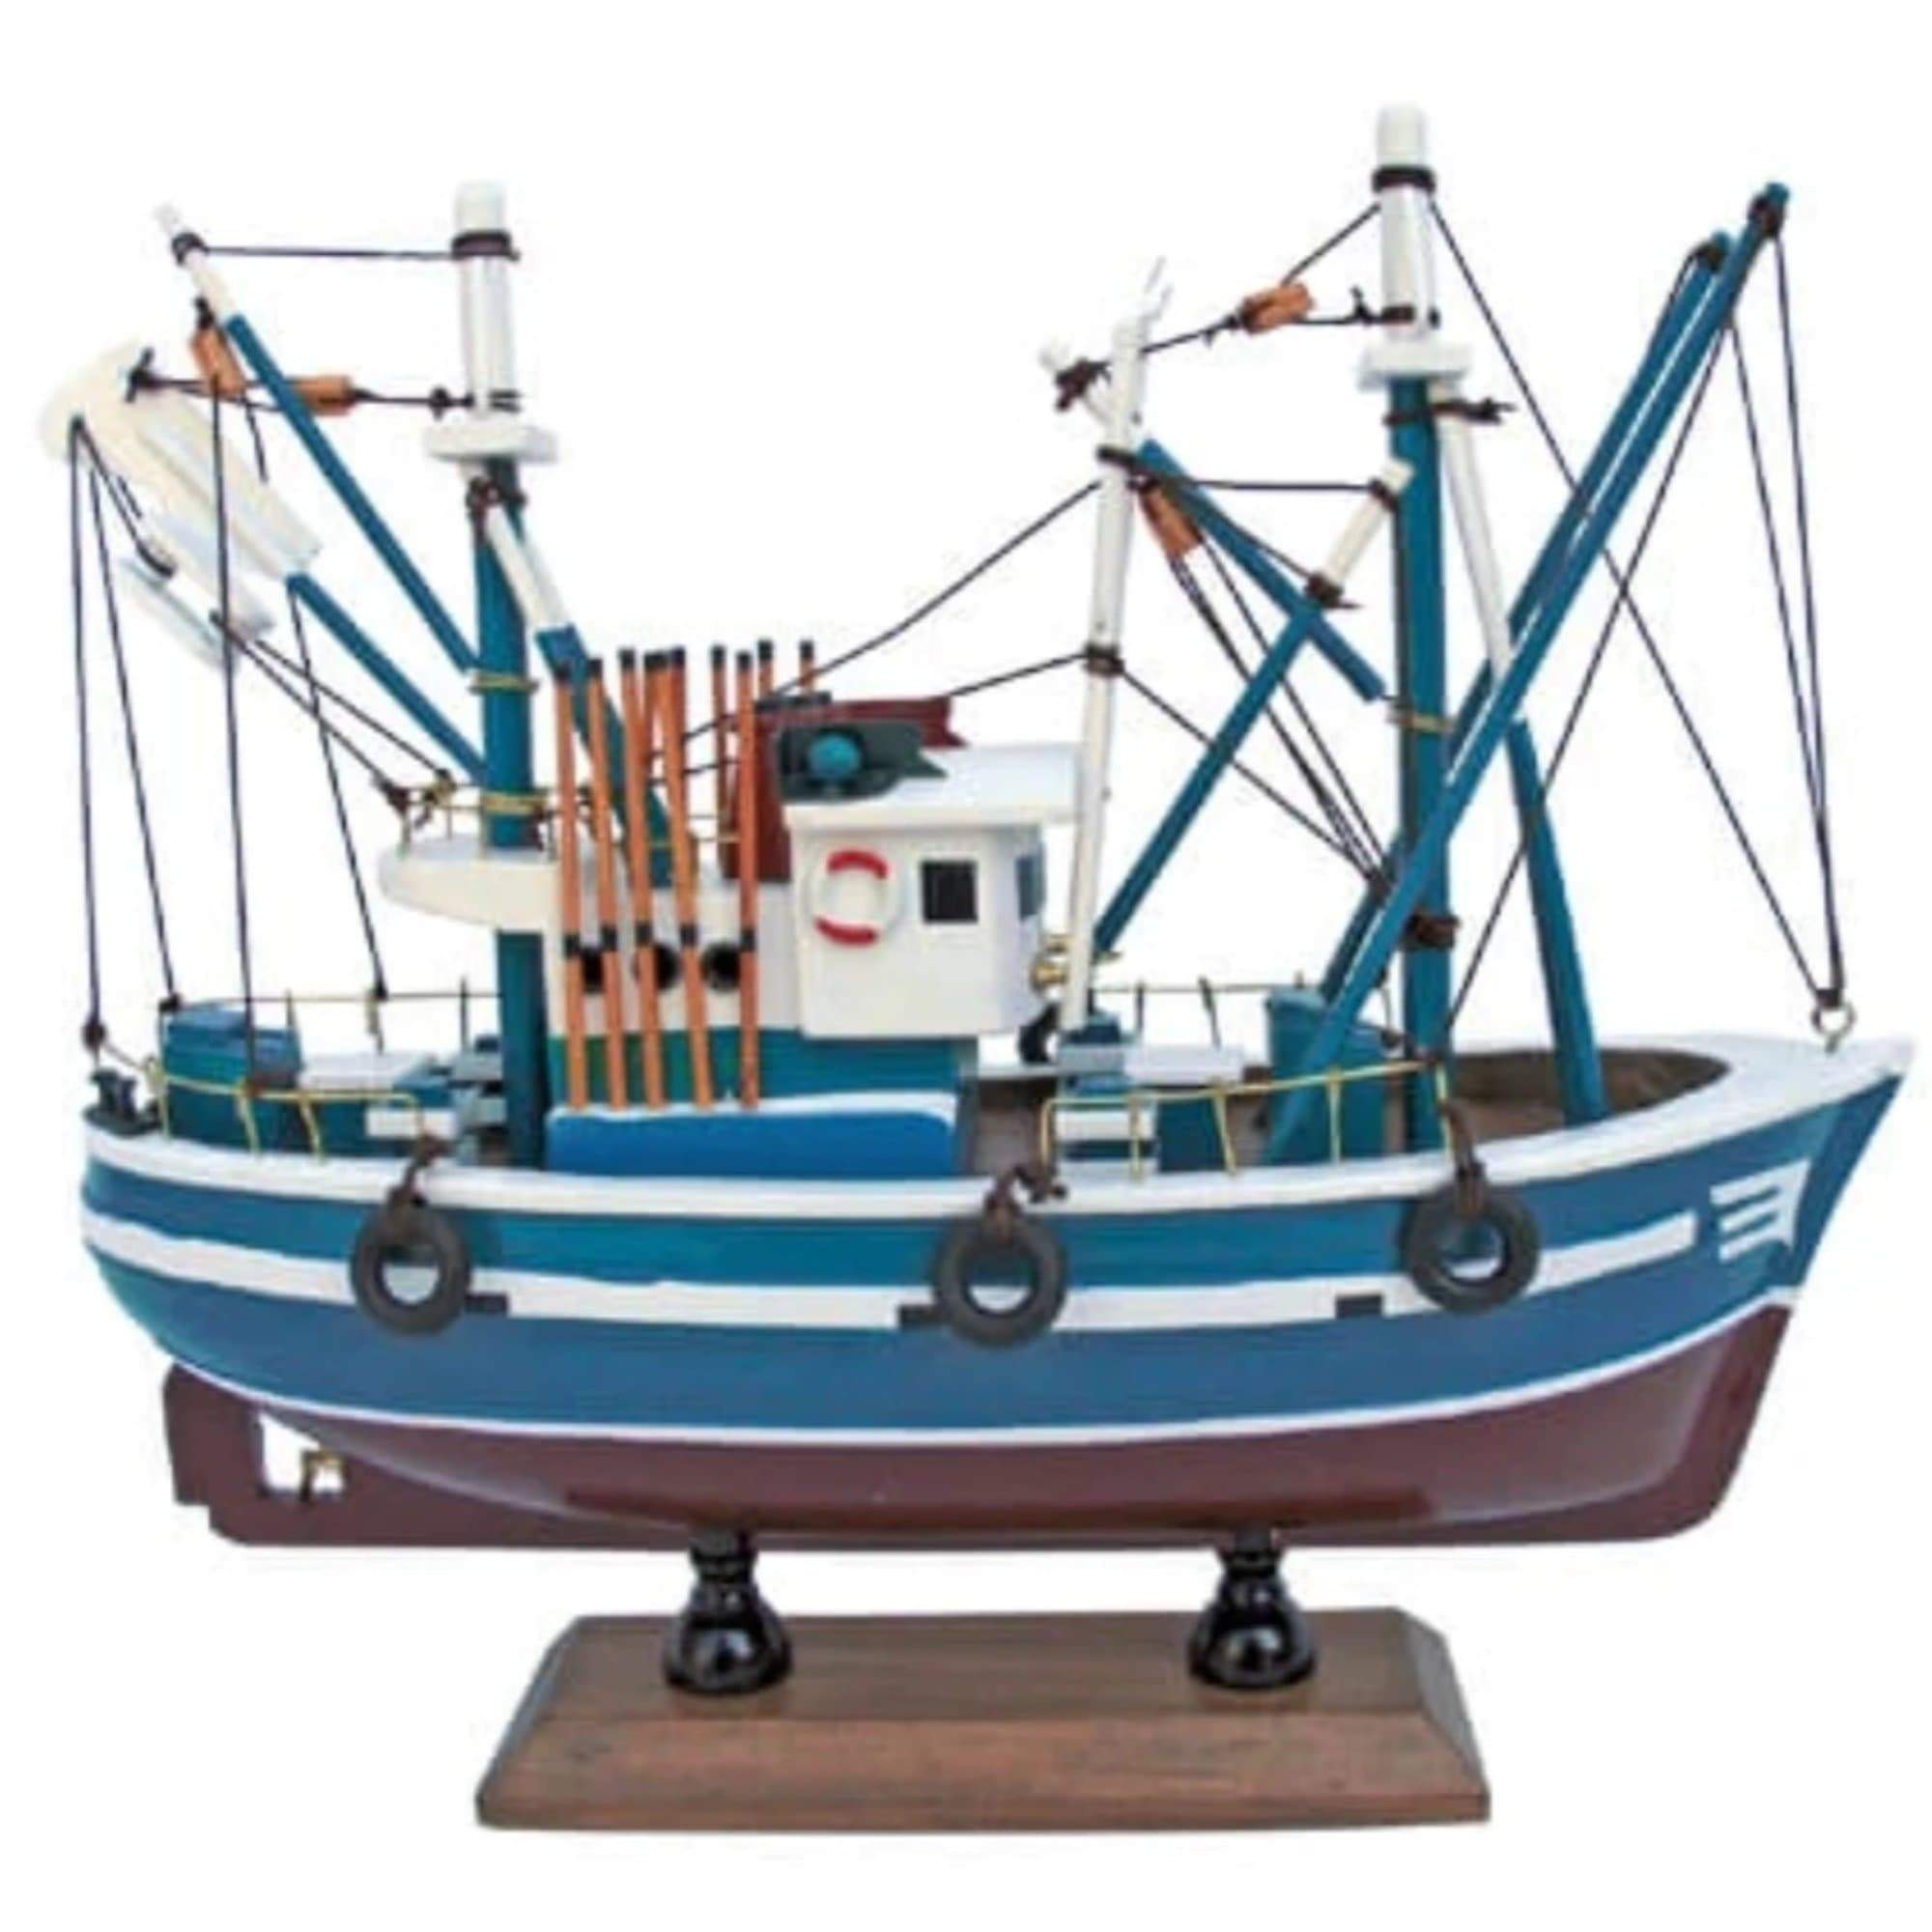 Batela Giftware-Fishing Boats-Model Fishing Boat VIII - Blue - Model Boat